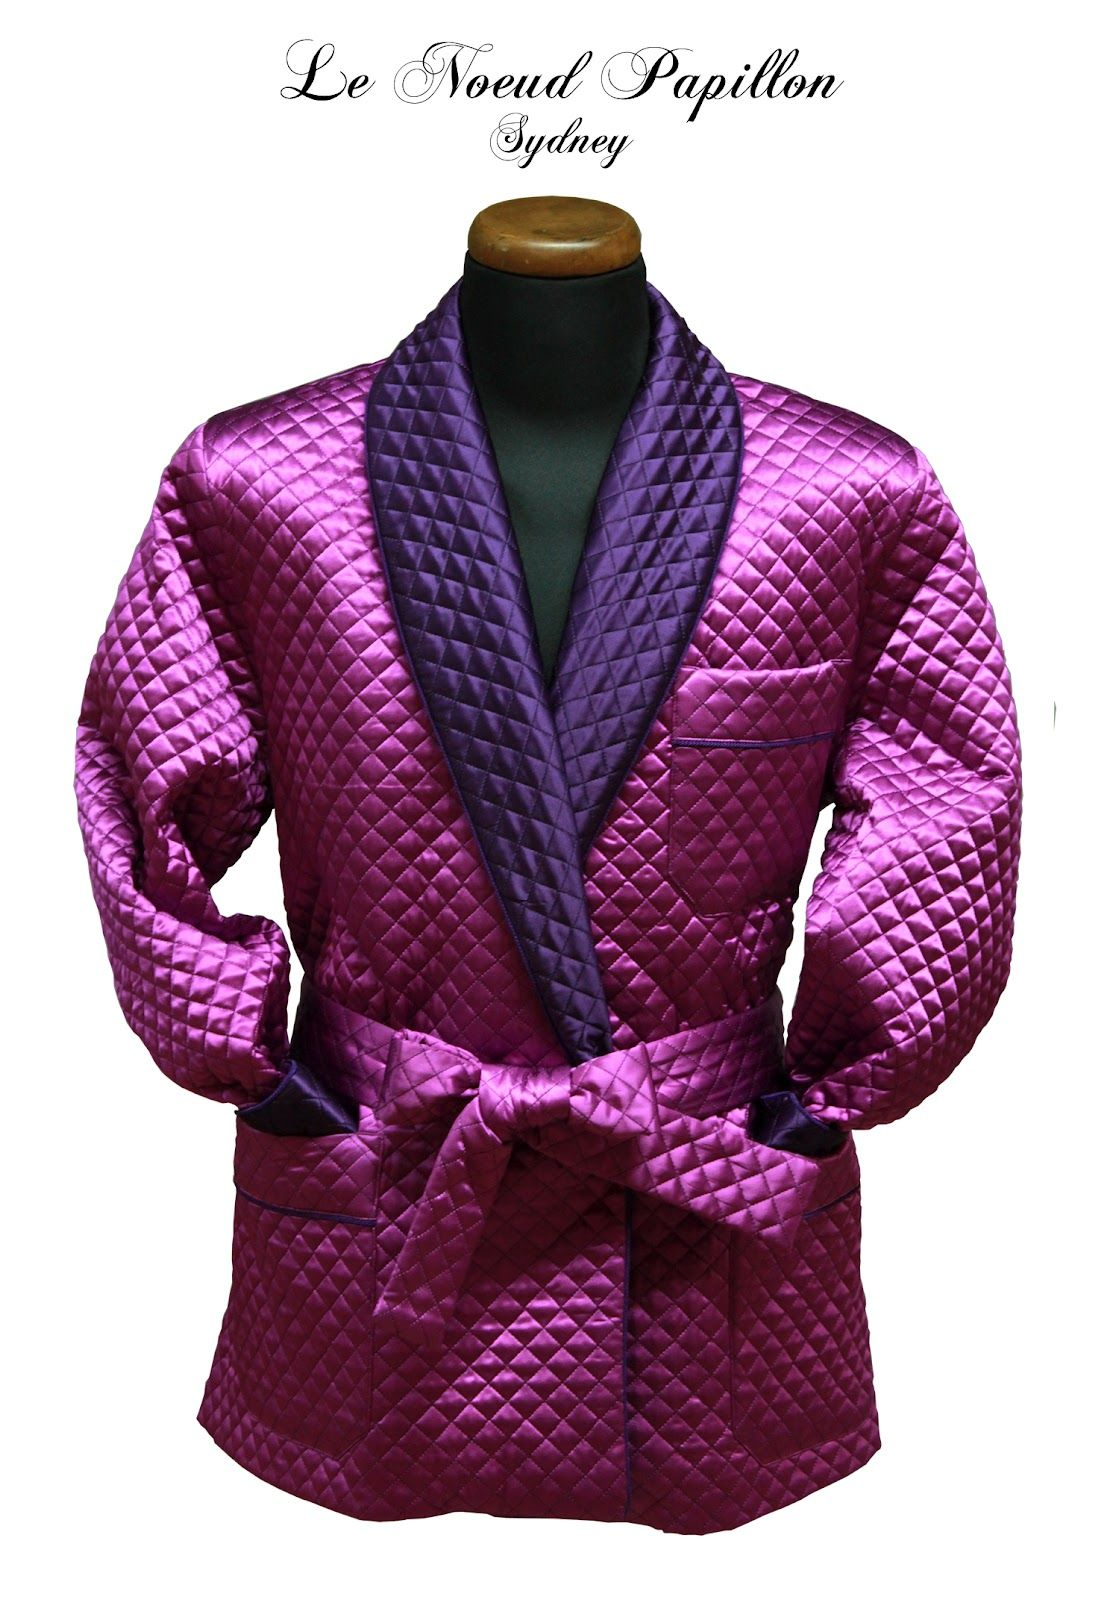 Purple Quilted Silk Smoking Jacket - From Le Noeud Papillon Of Sydney - http://lenoeudpapillon.blogspot.com.au/2012/07/one-of-our-new-smoking-jackets-purple.html